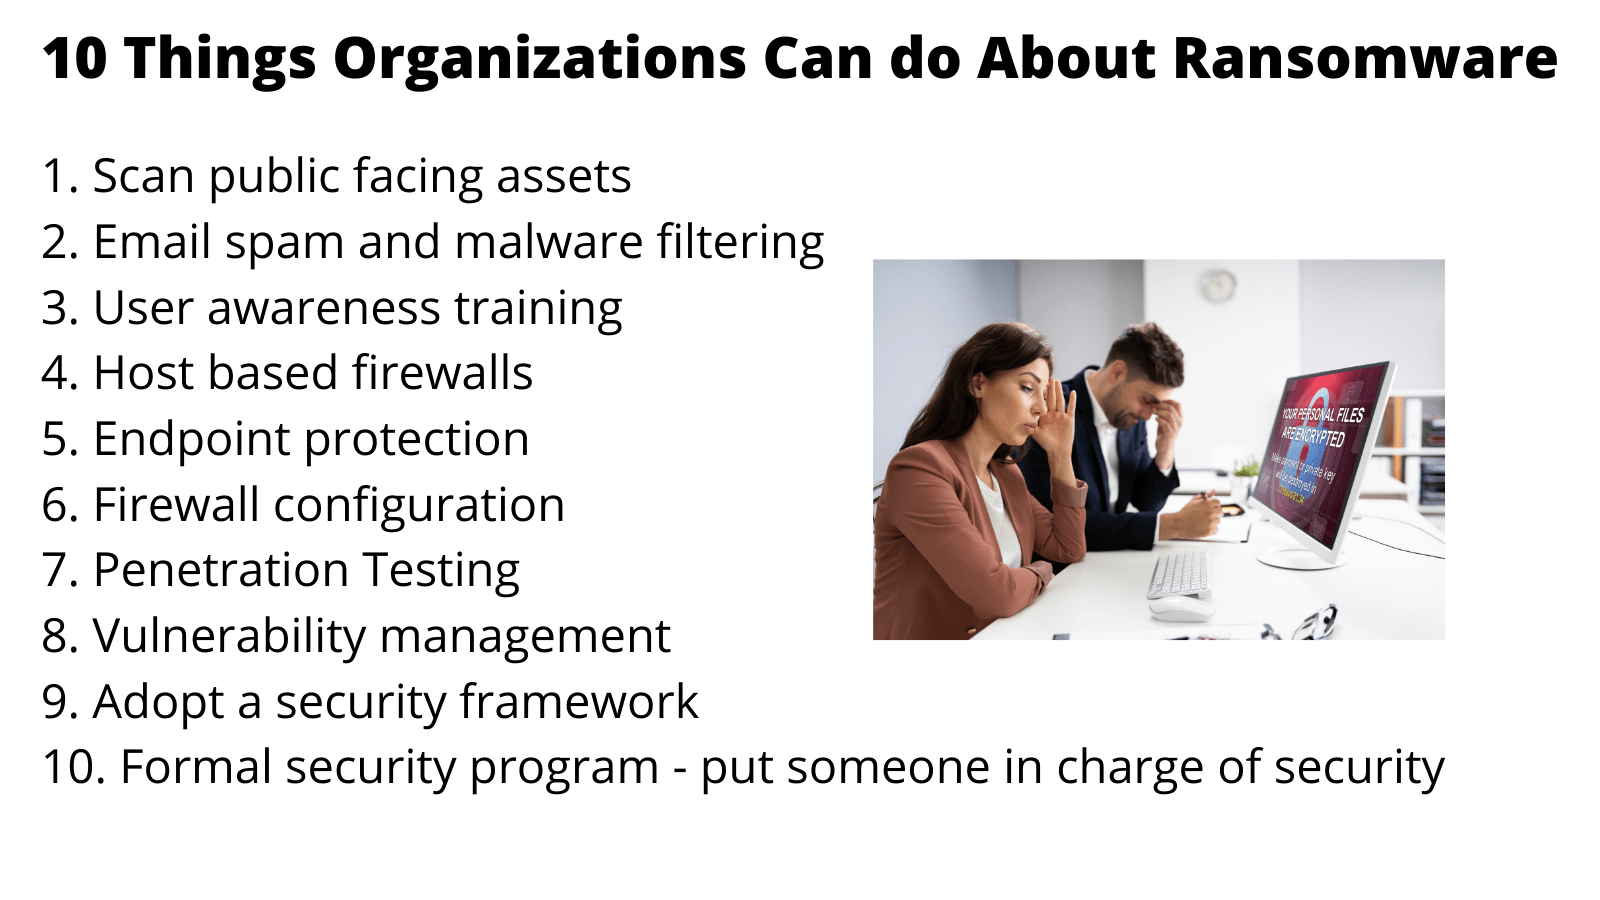 10 Things to prevent ransomware.